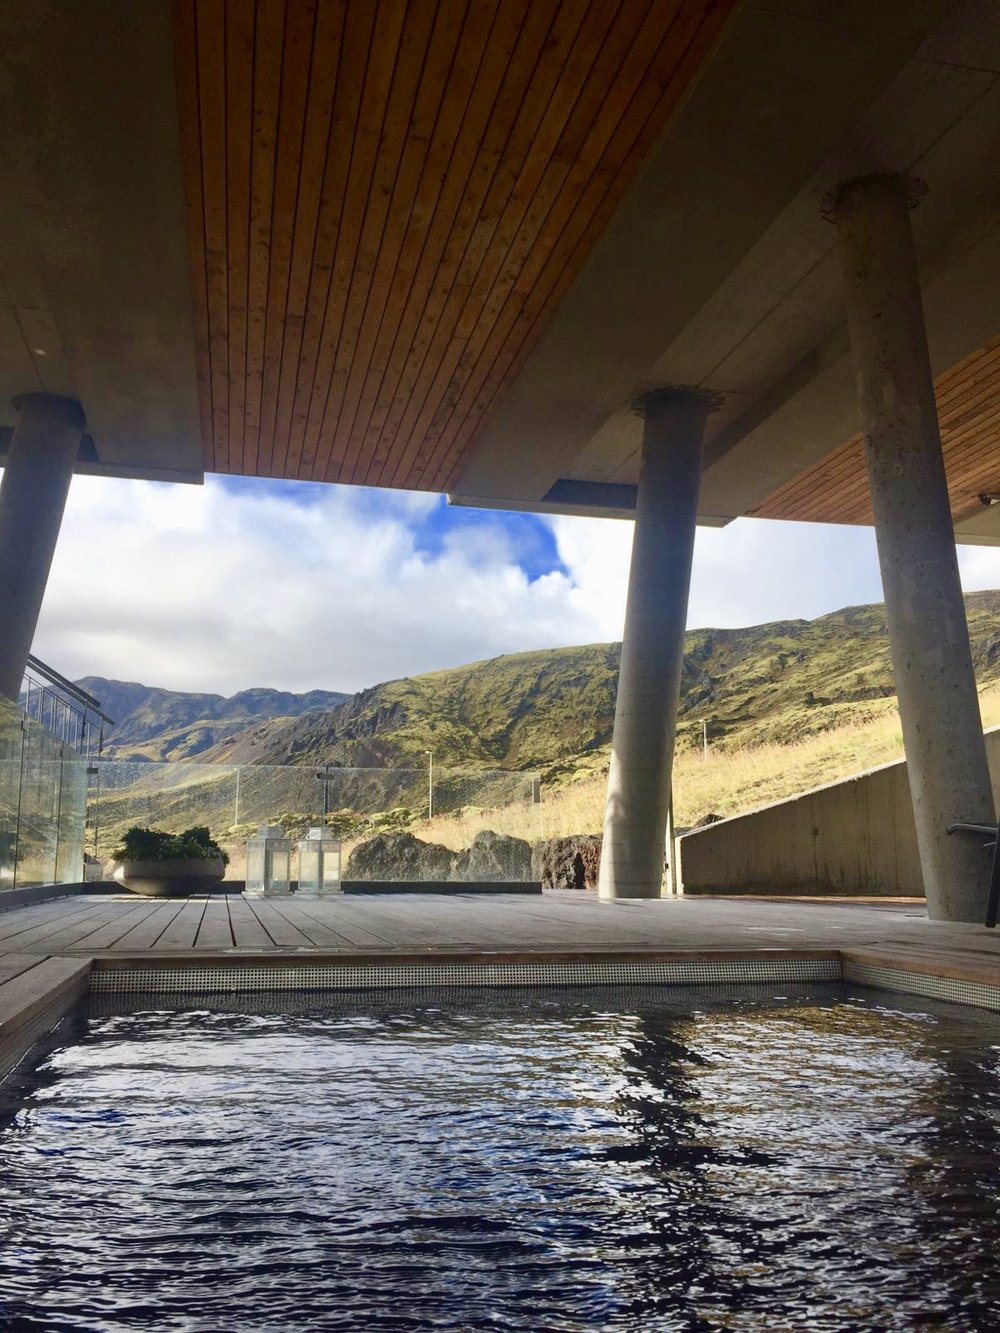 The Thermal Spa at the ION